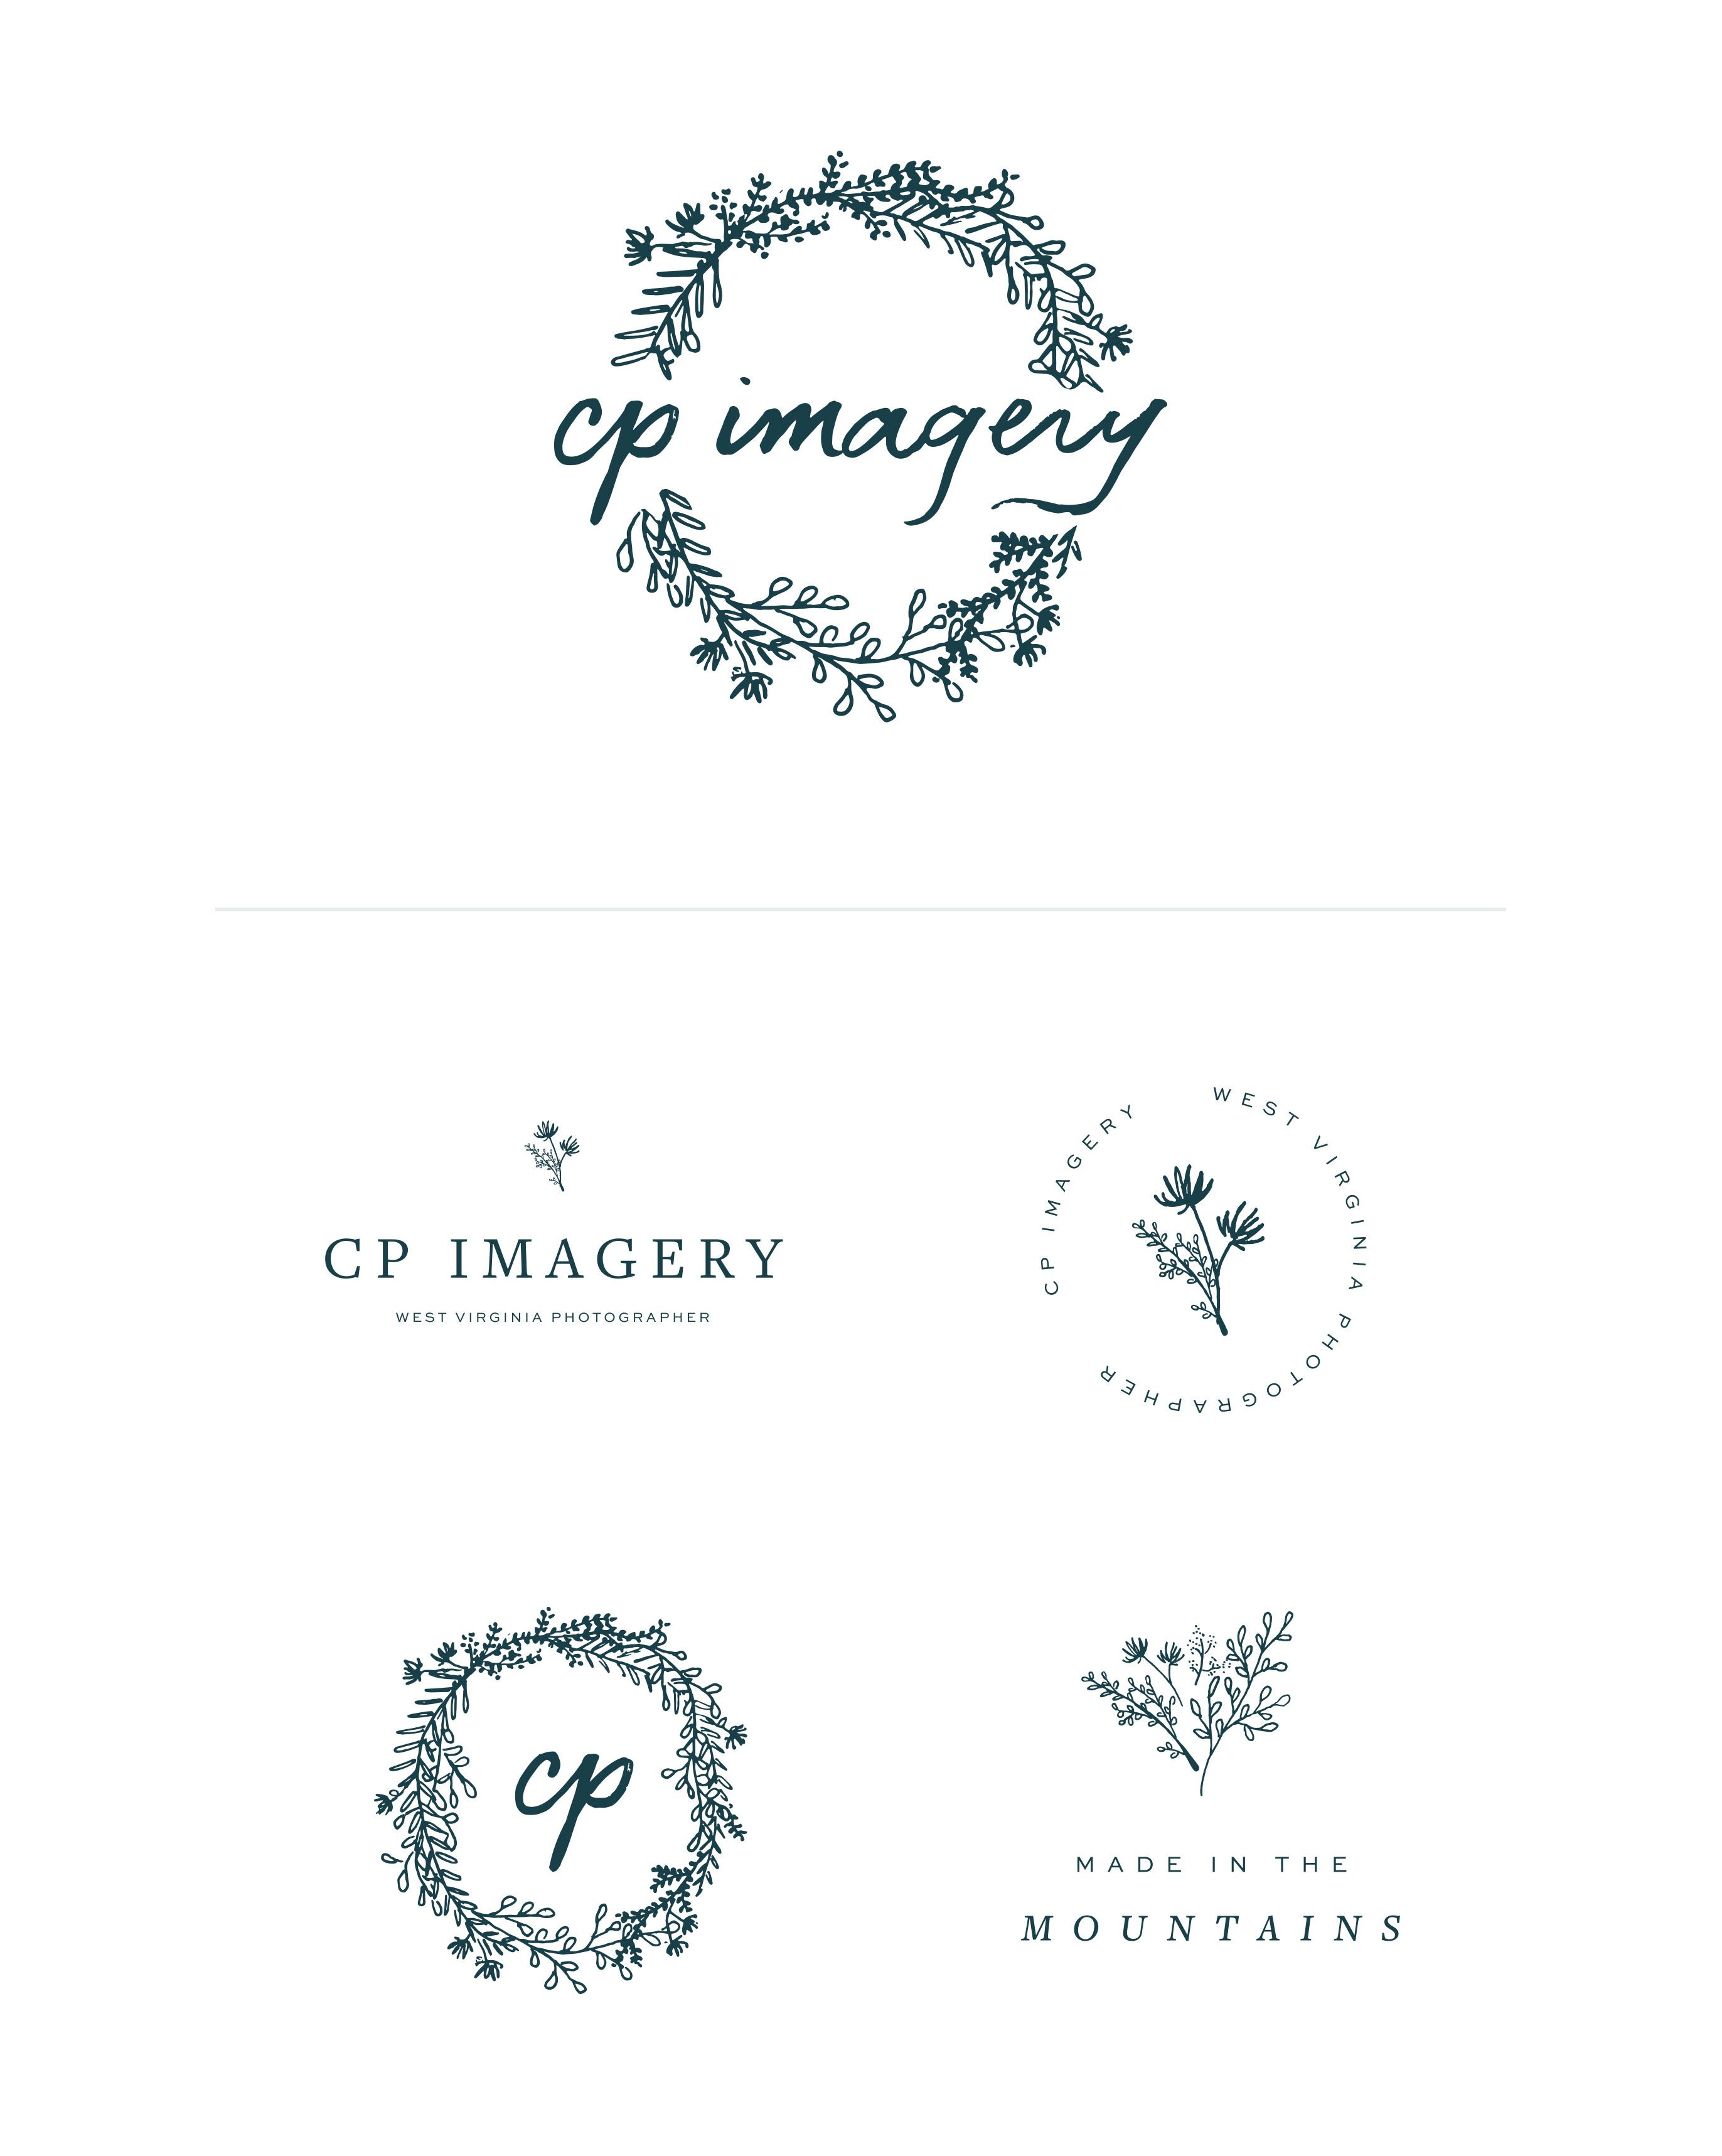 Wv design studio - Cp Imagery Wayfarer Design Studio Wayfarer Design Studio